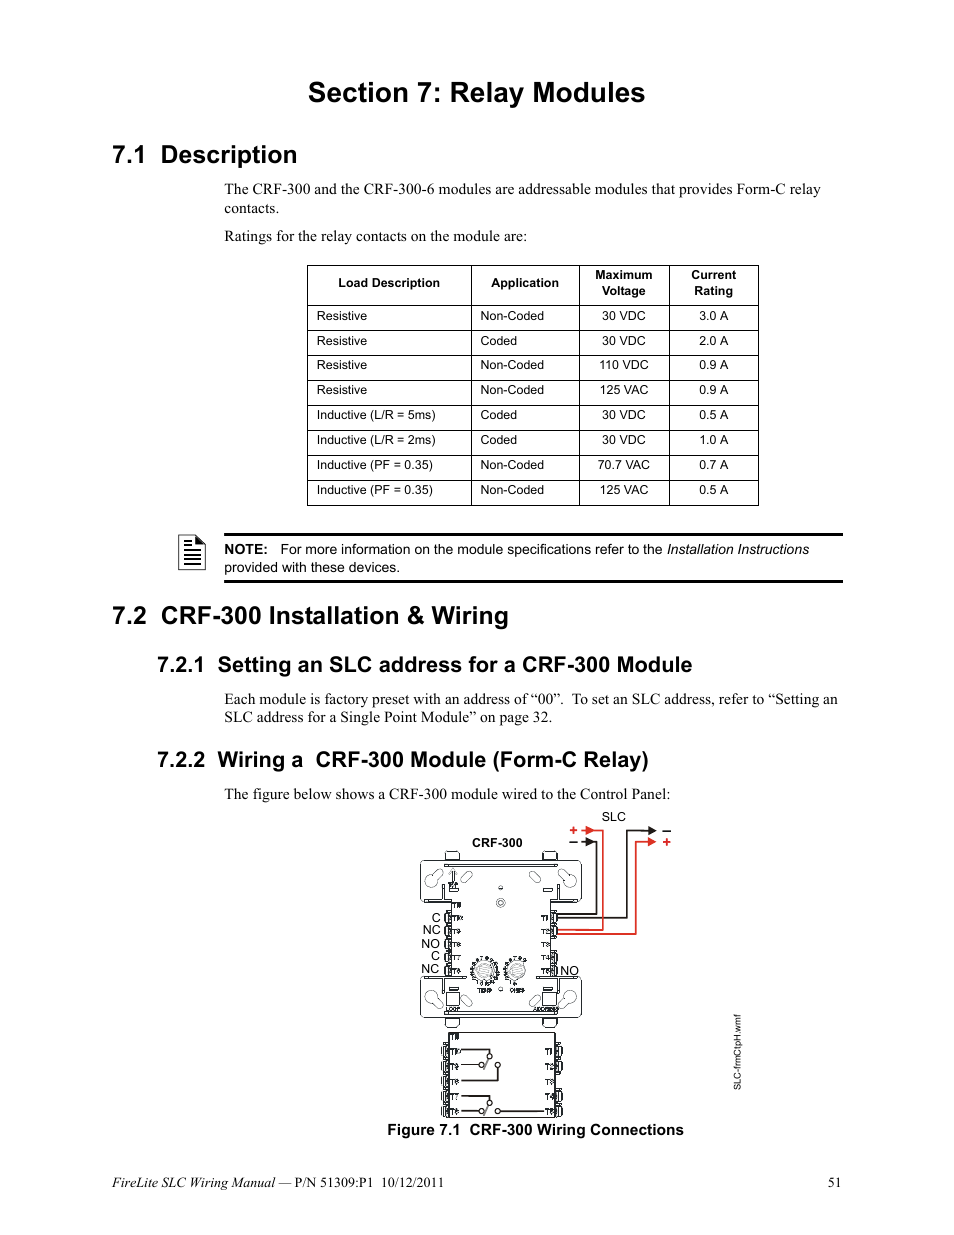 section 7: relay modules, 1 description, 2 crf-300 installation & wiring |  fire-lite slc intelligent control panel wiring manual user manual | page 51  / 80